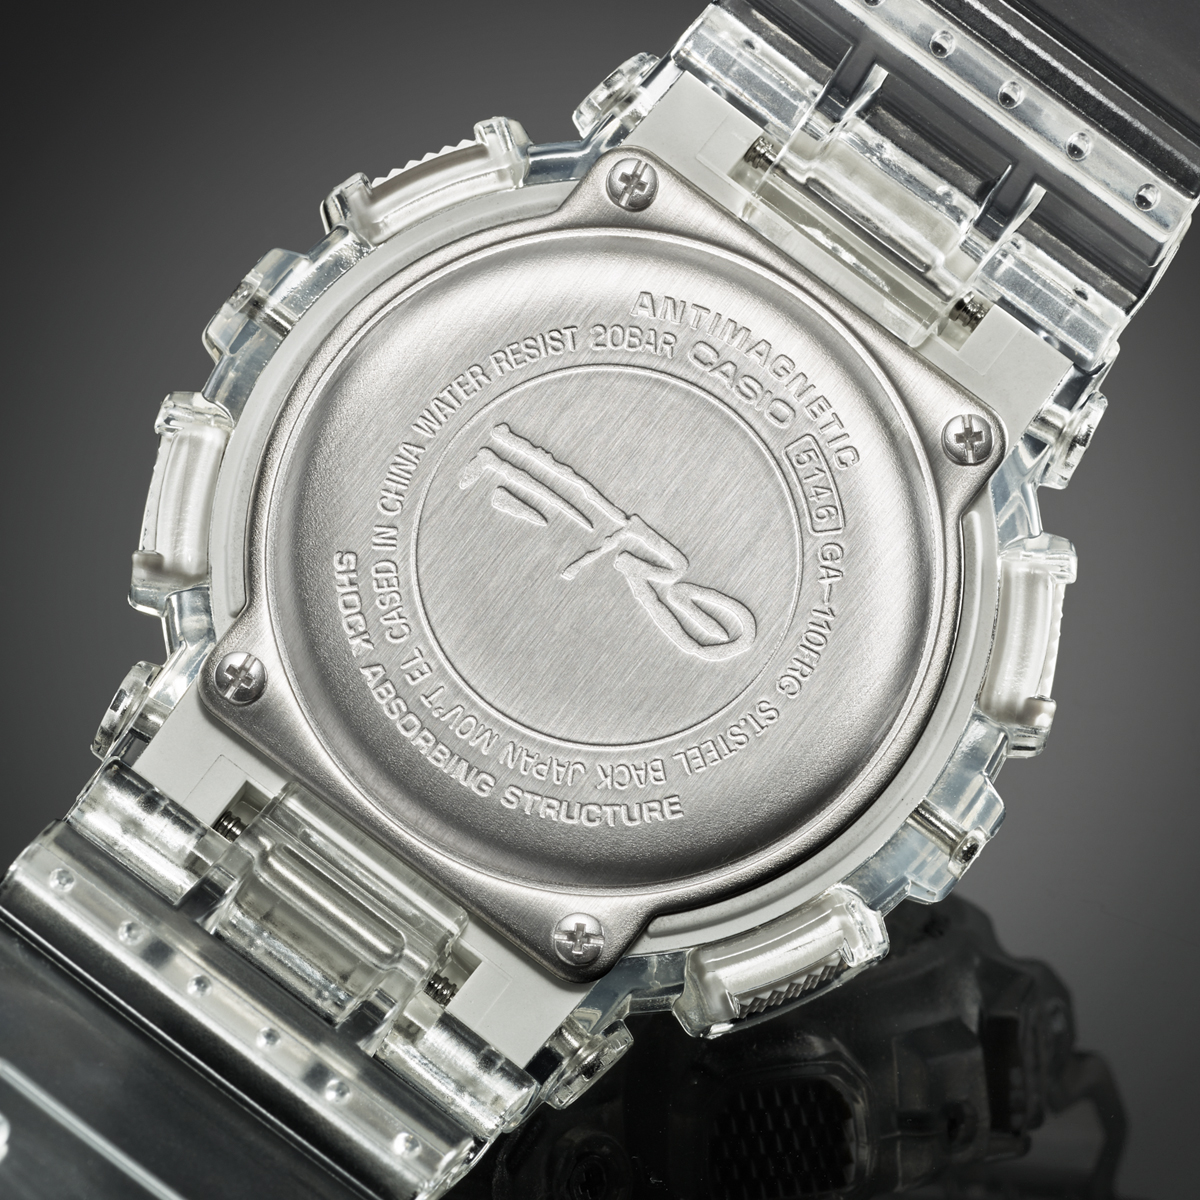 Limited Edition SIGNED A$AP Ferg x G-Shock Collaboration Watch